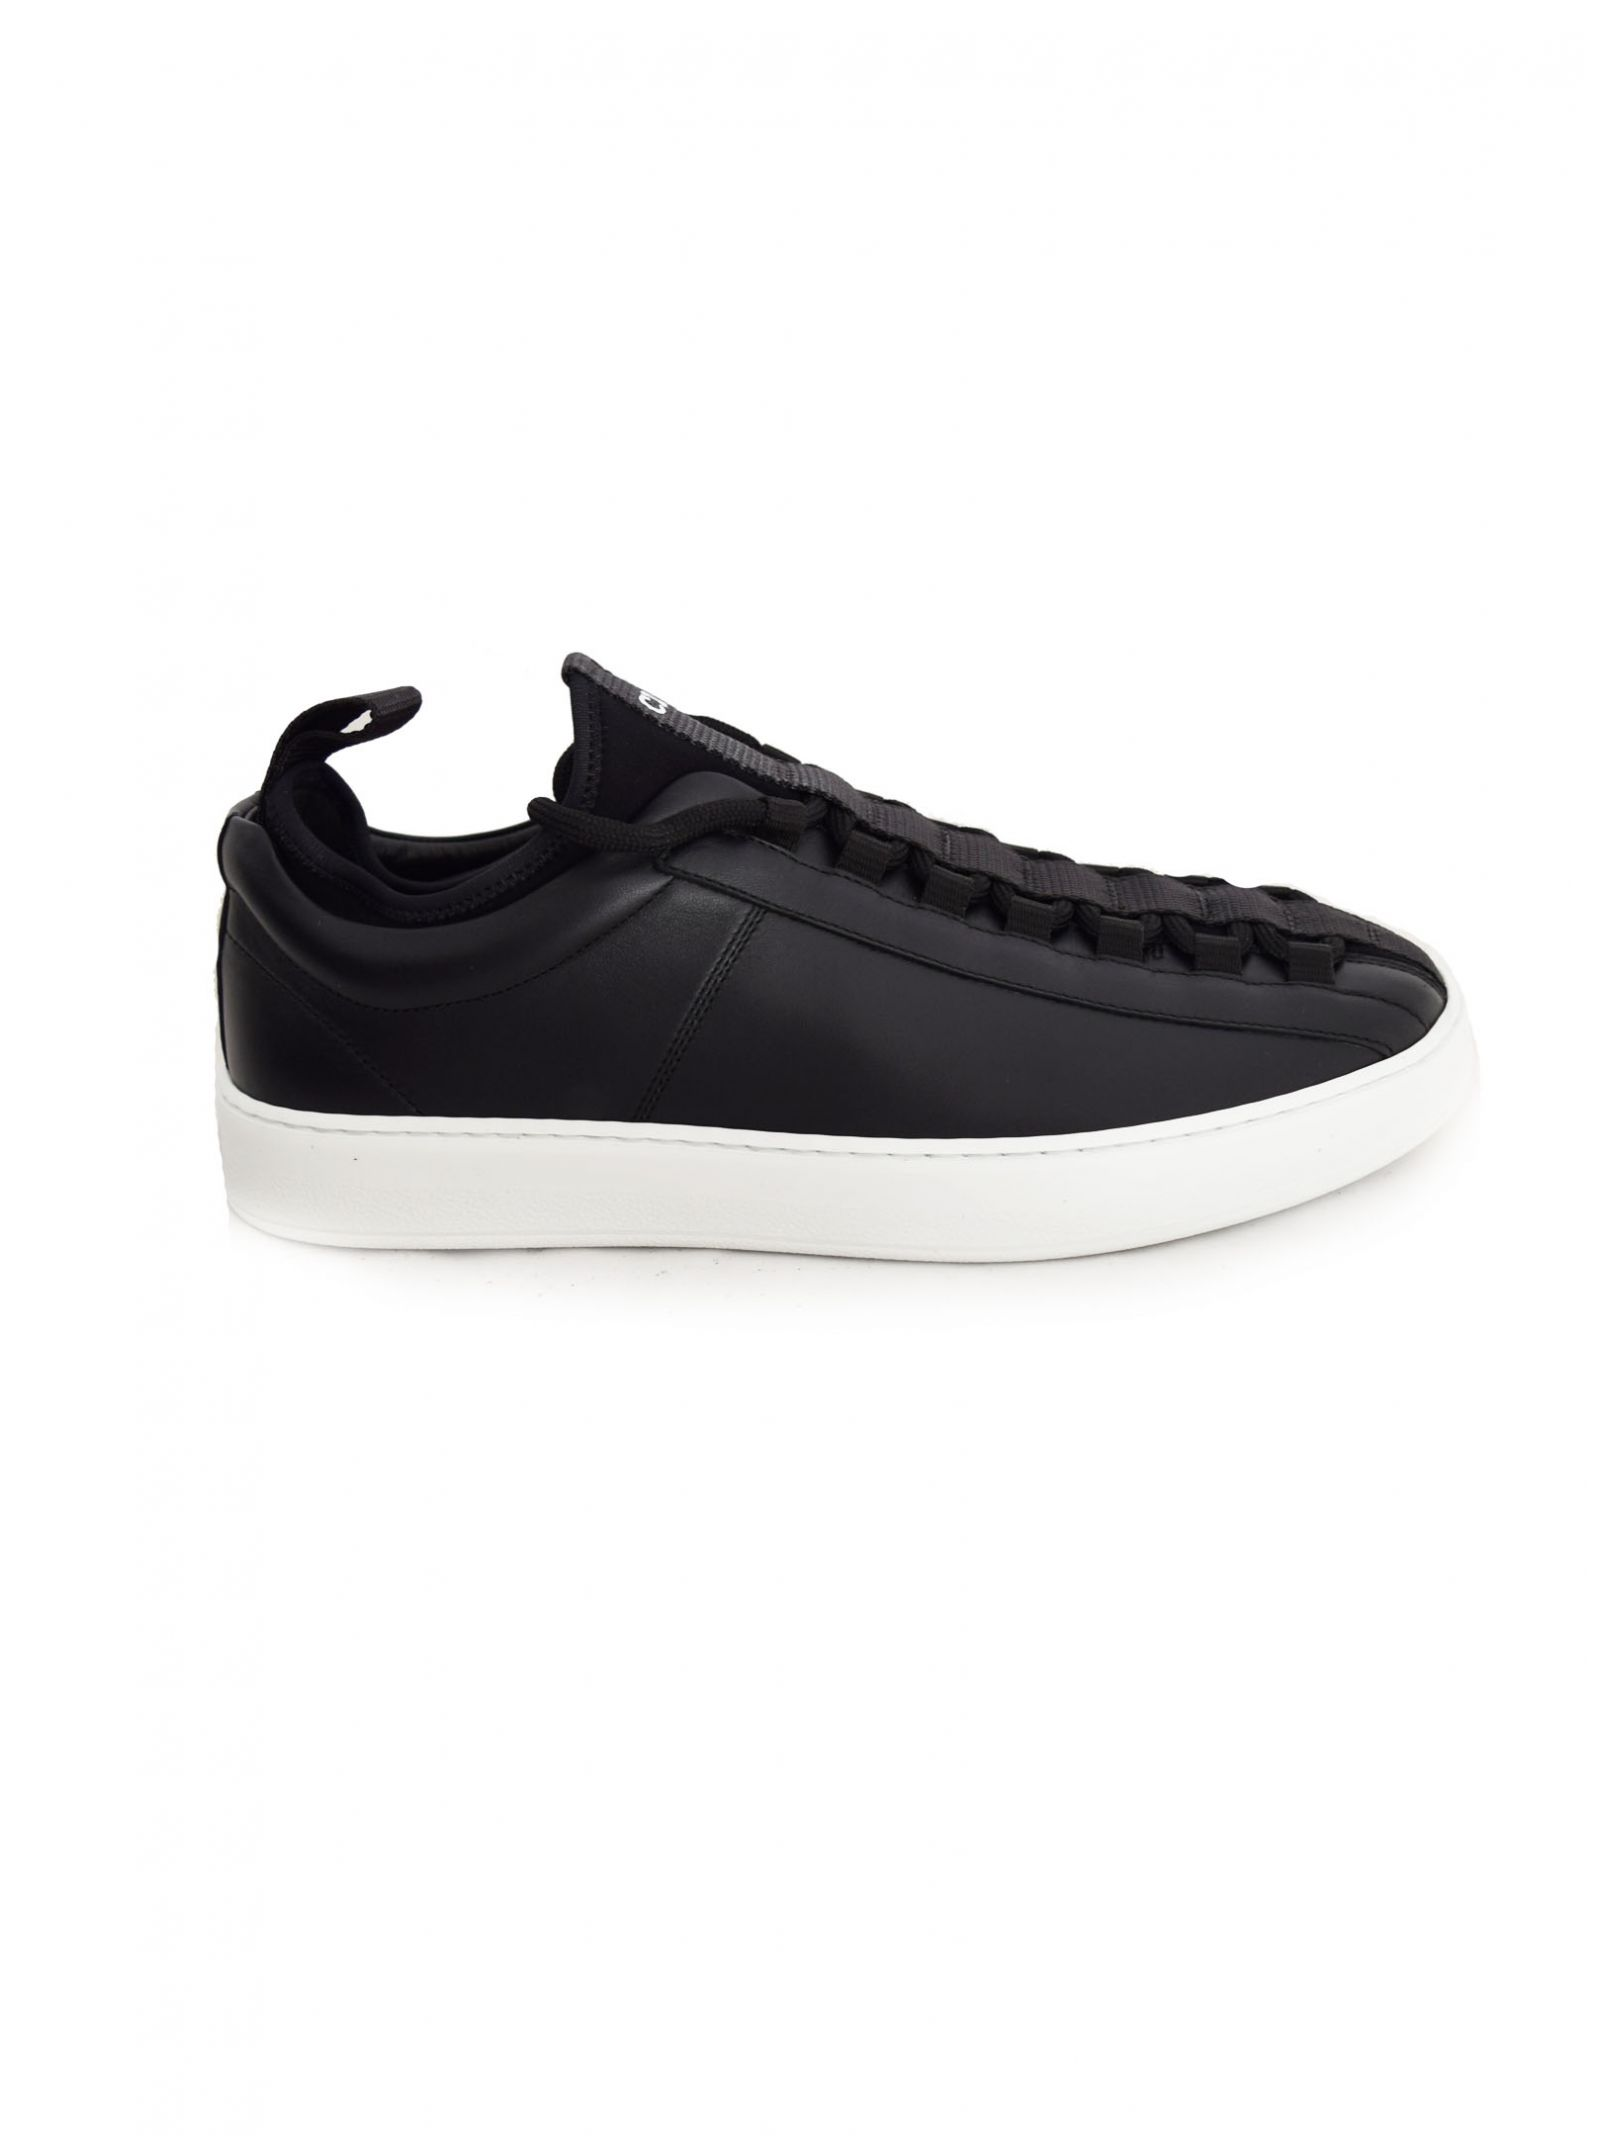 Christian Dior Classic Sneakers